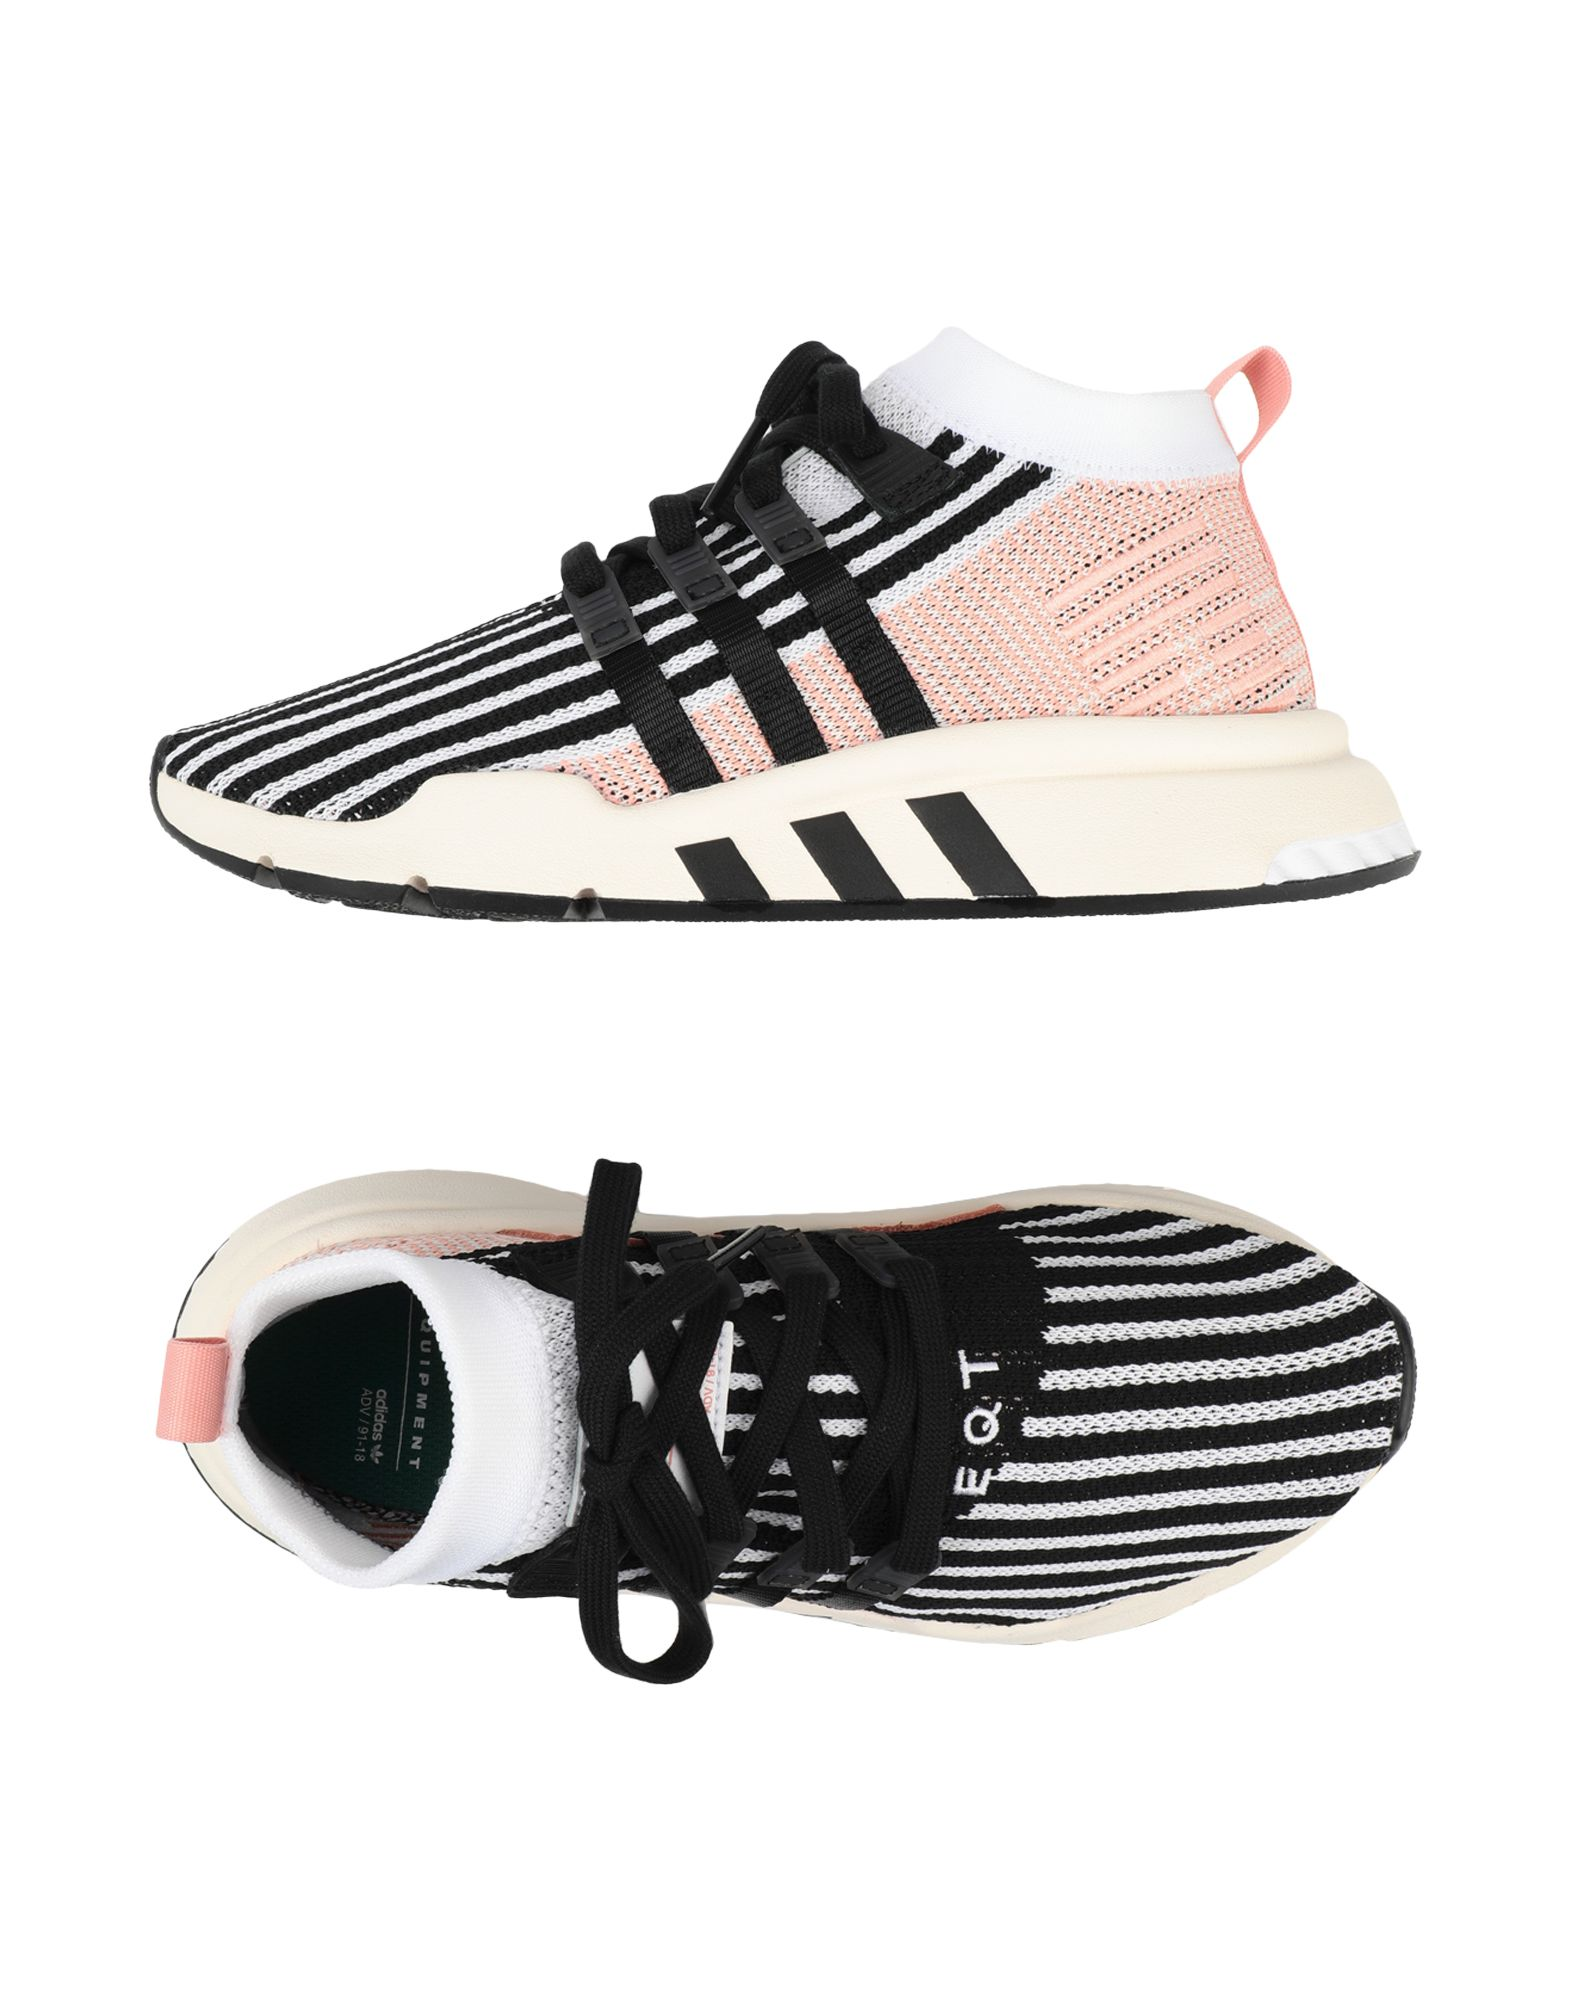 Baskets Adidas Originals Eqt Support Mid Adv - Femme - Baskets Adidas Originals Noir Remise de marque